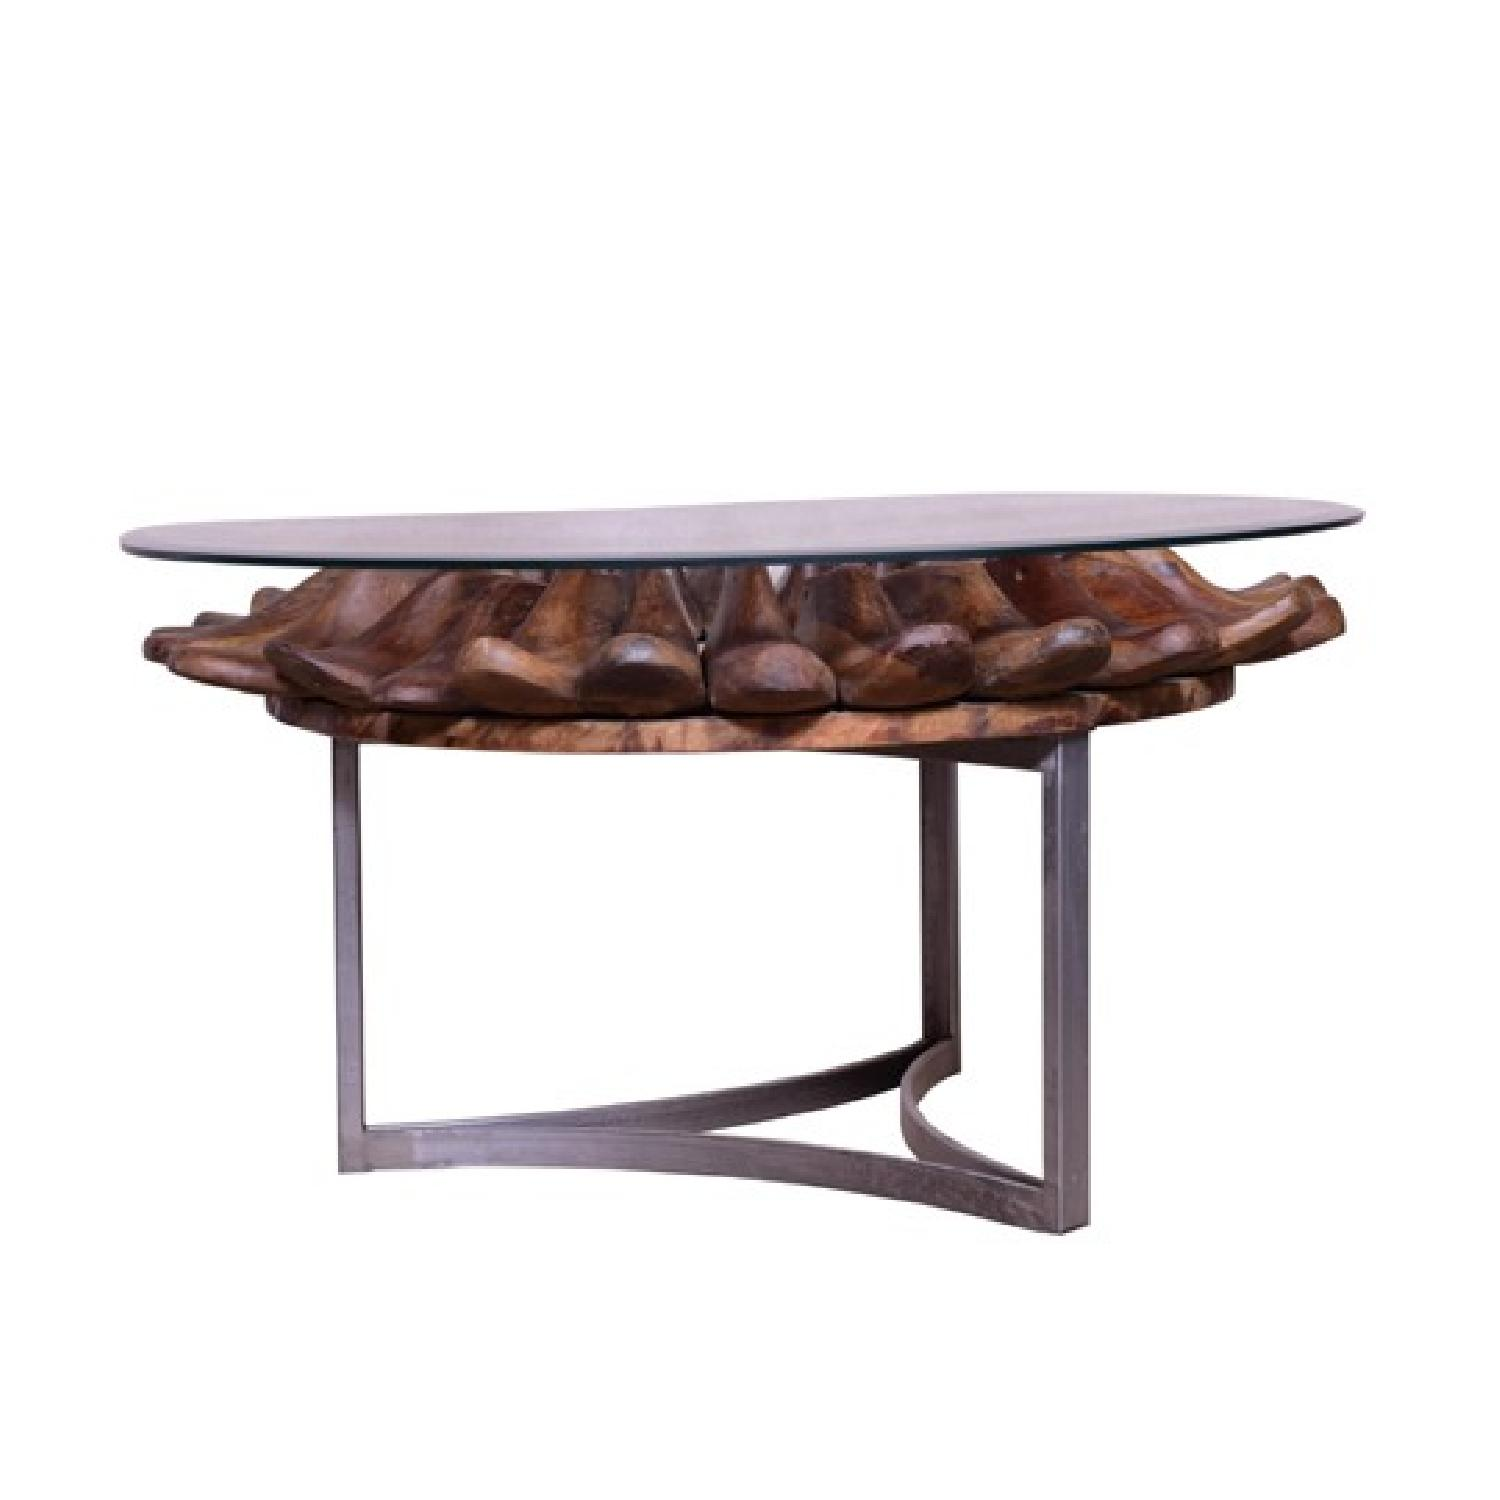 Coffee Table Fresh In Images of Exterior